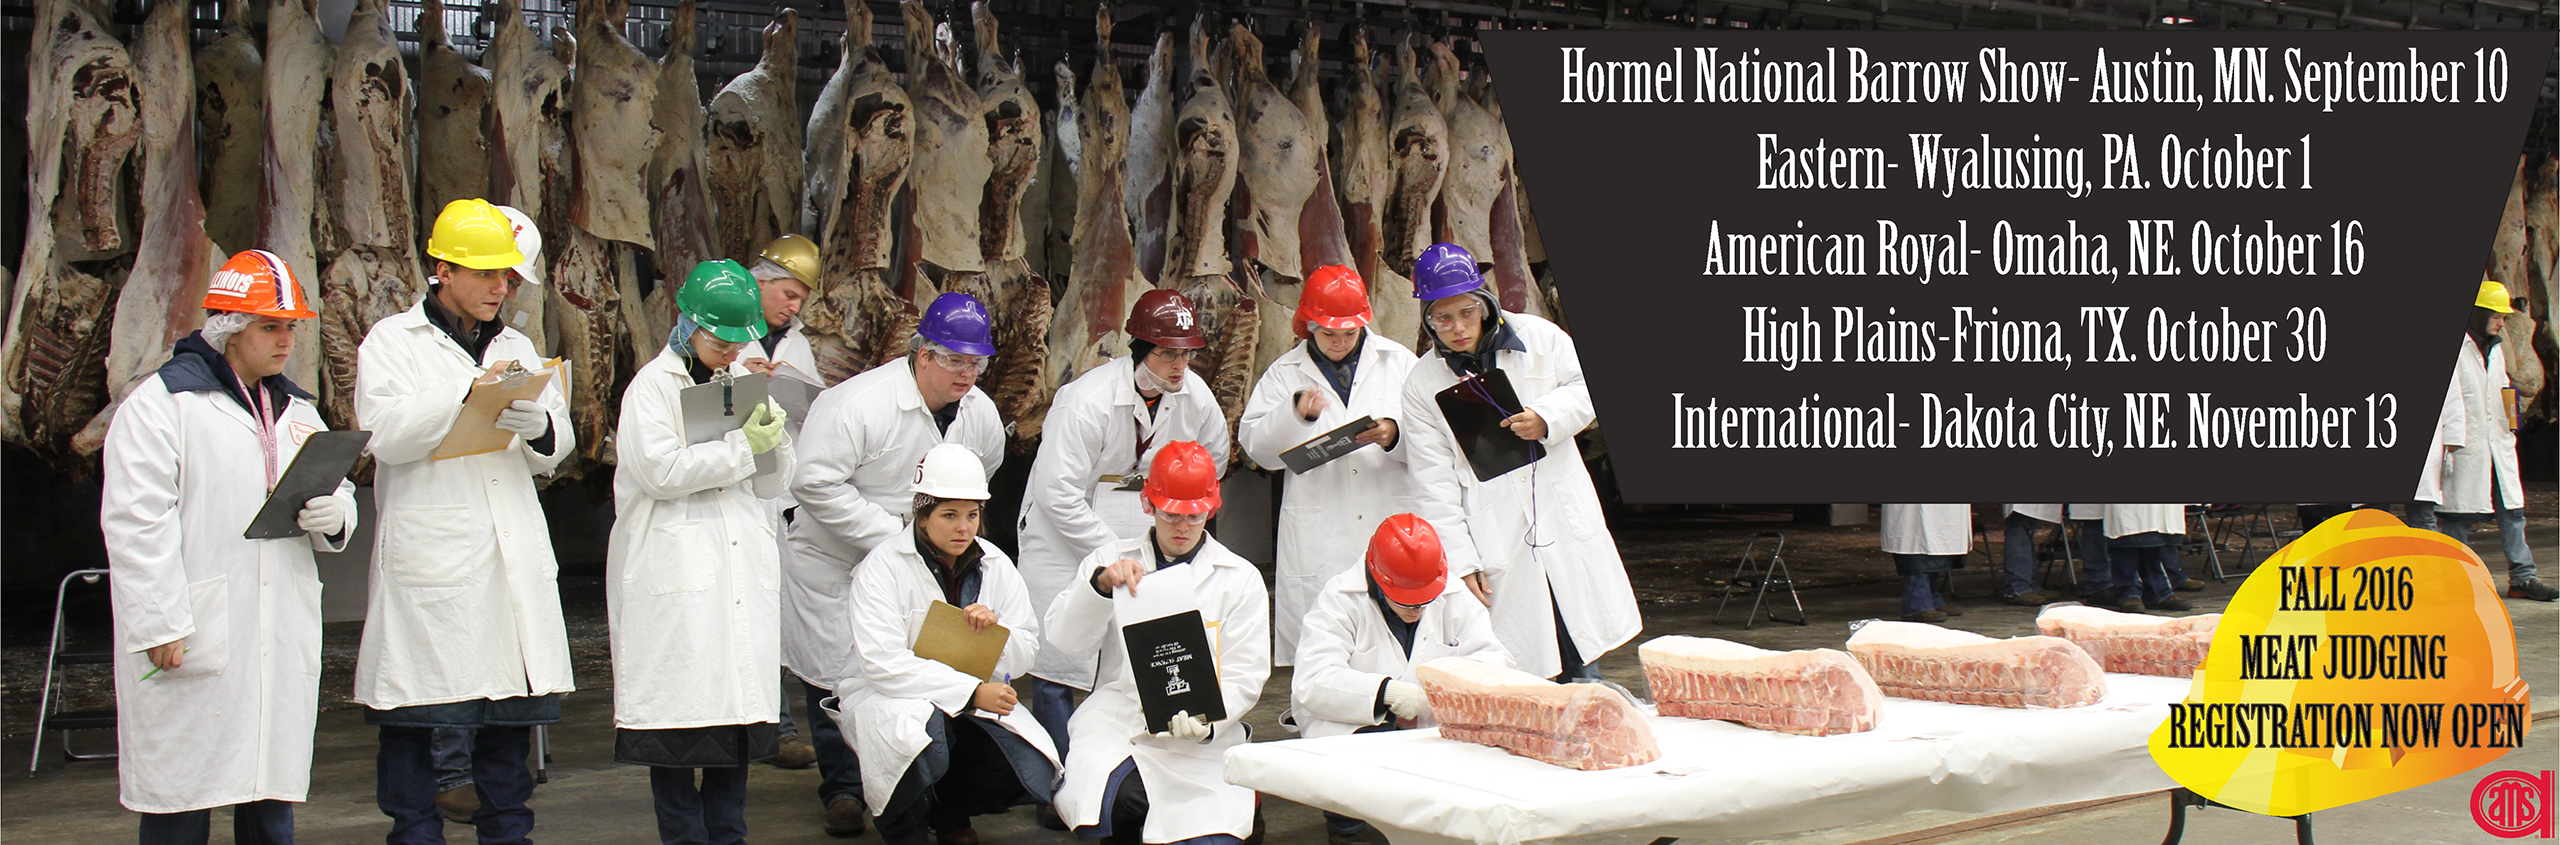 Fall Meat Judging Registration Now Open